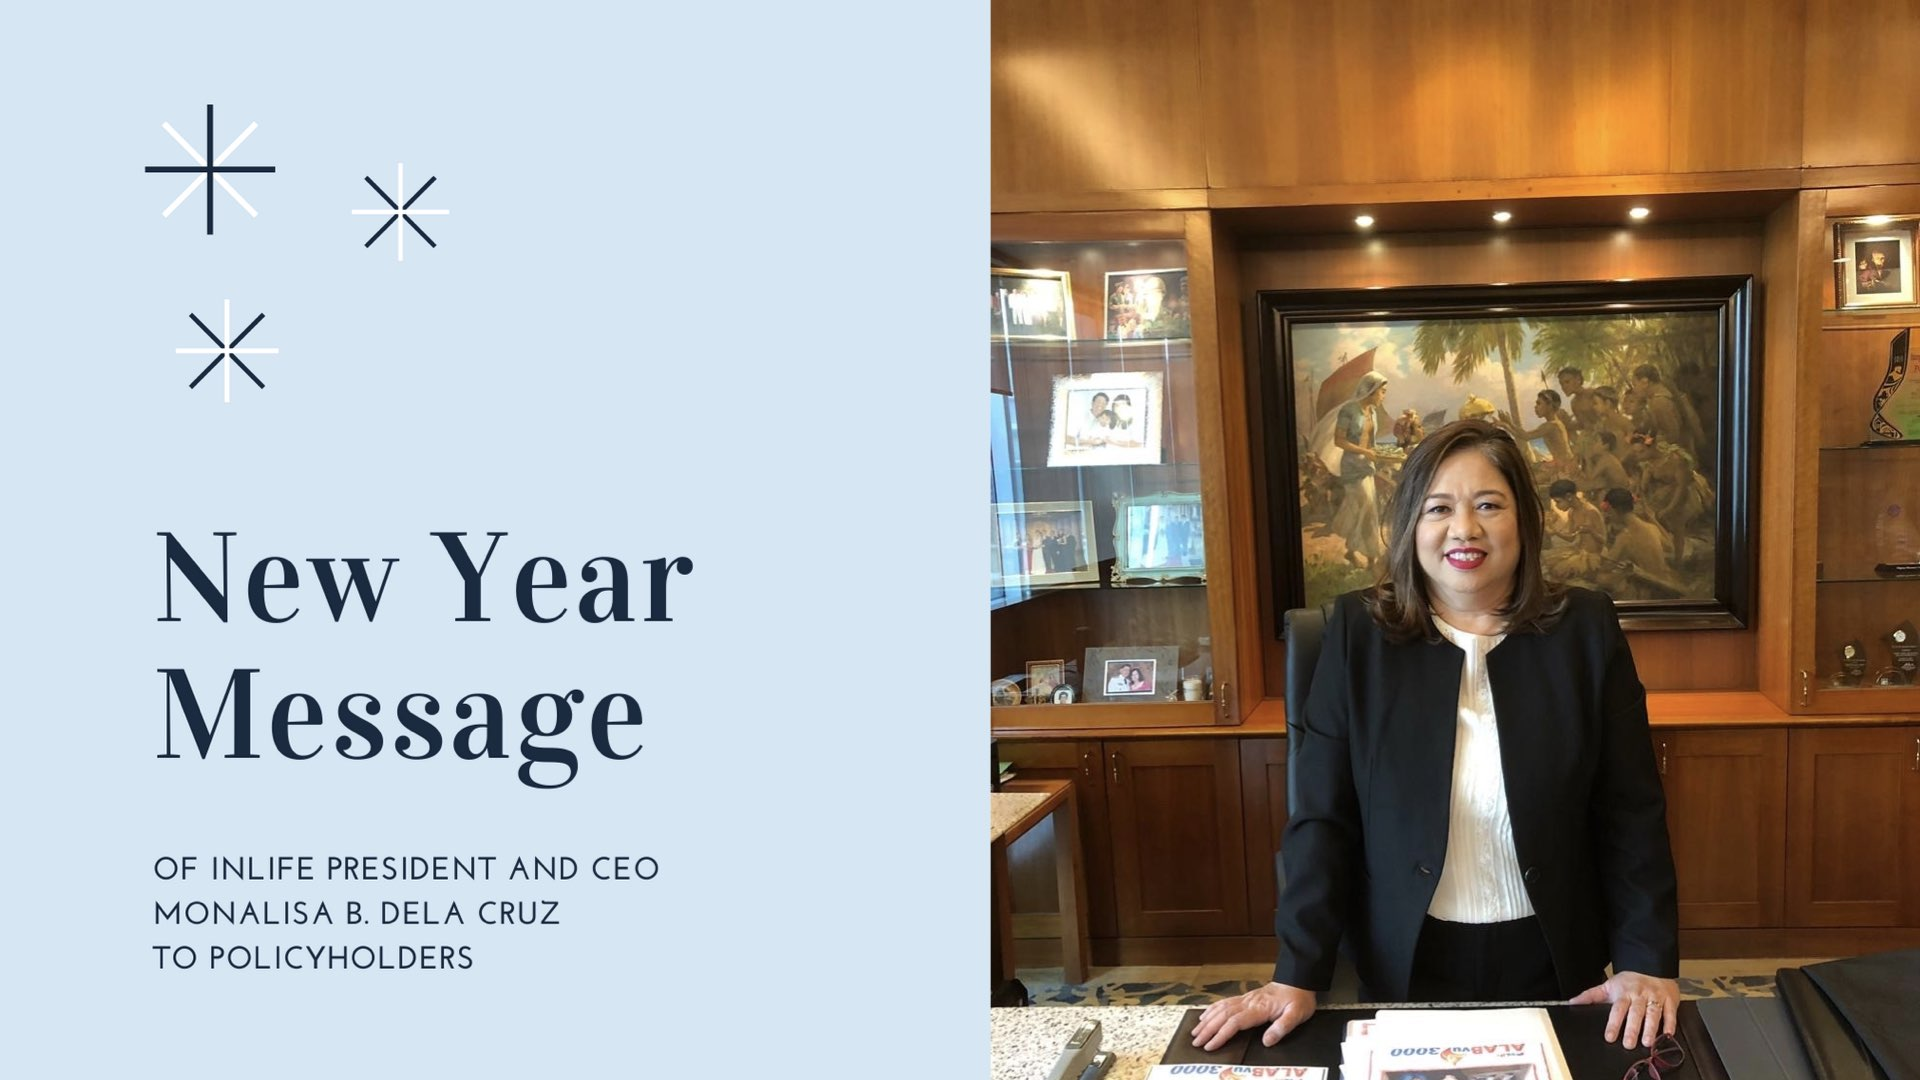 New Year Message of InLife CEO Monalisa B. Dela Cruz to Policyholders